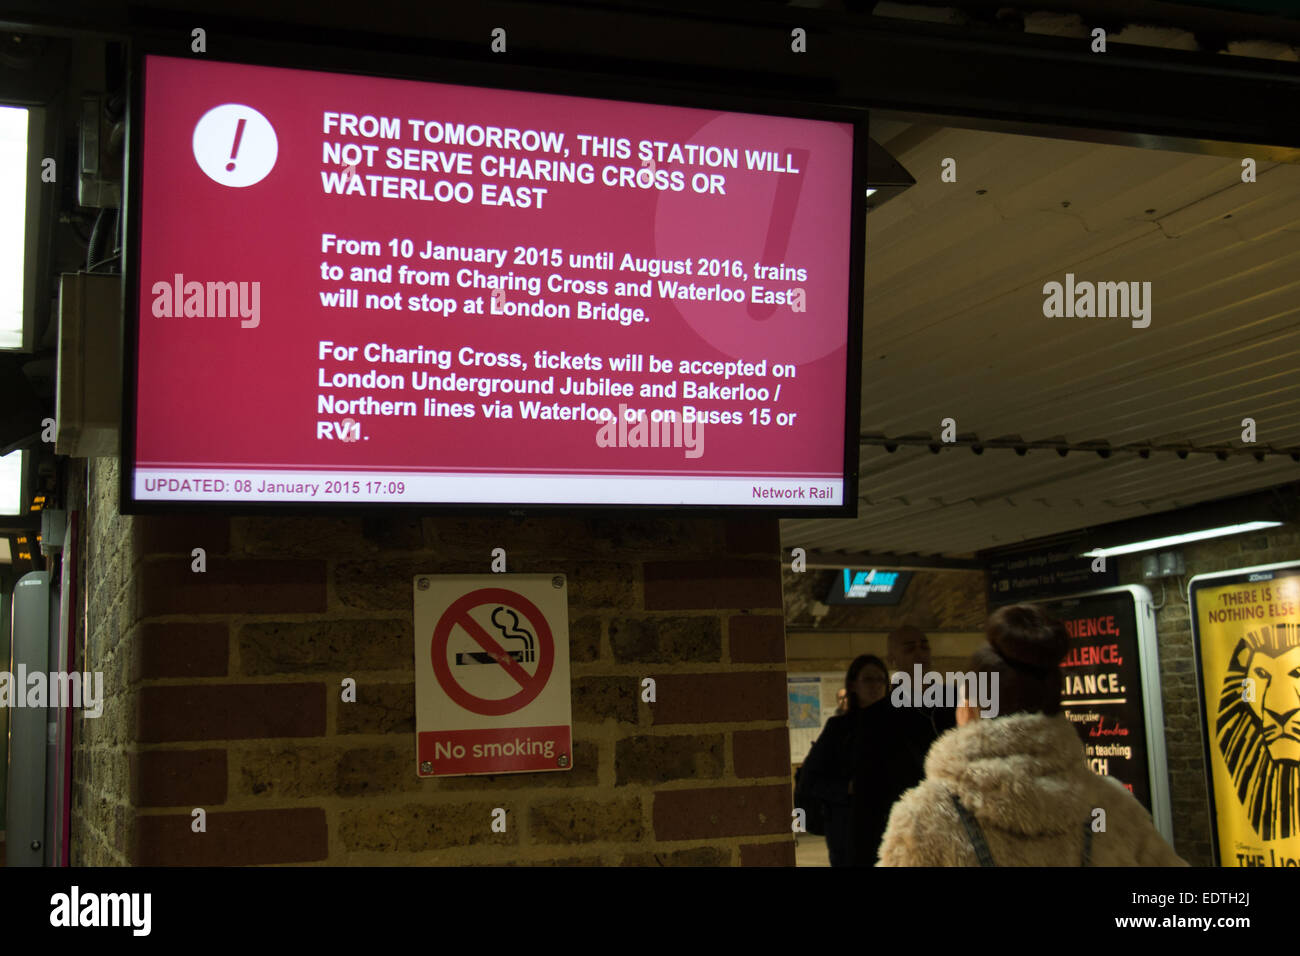 London, UK. 09 Jan 2015. A sign at London Bridge station warns passengers that from 10th January 2015 until August Stock Photo